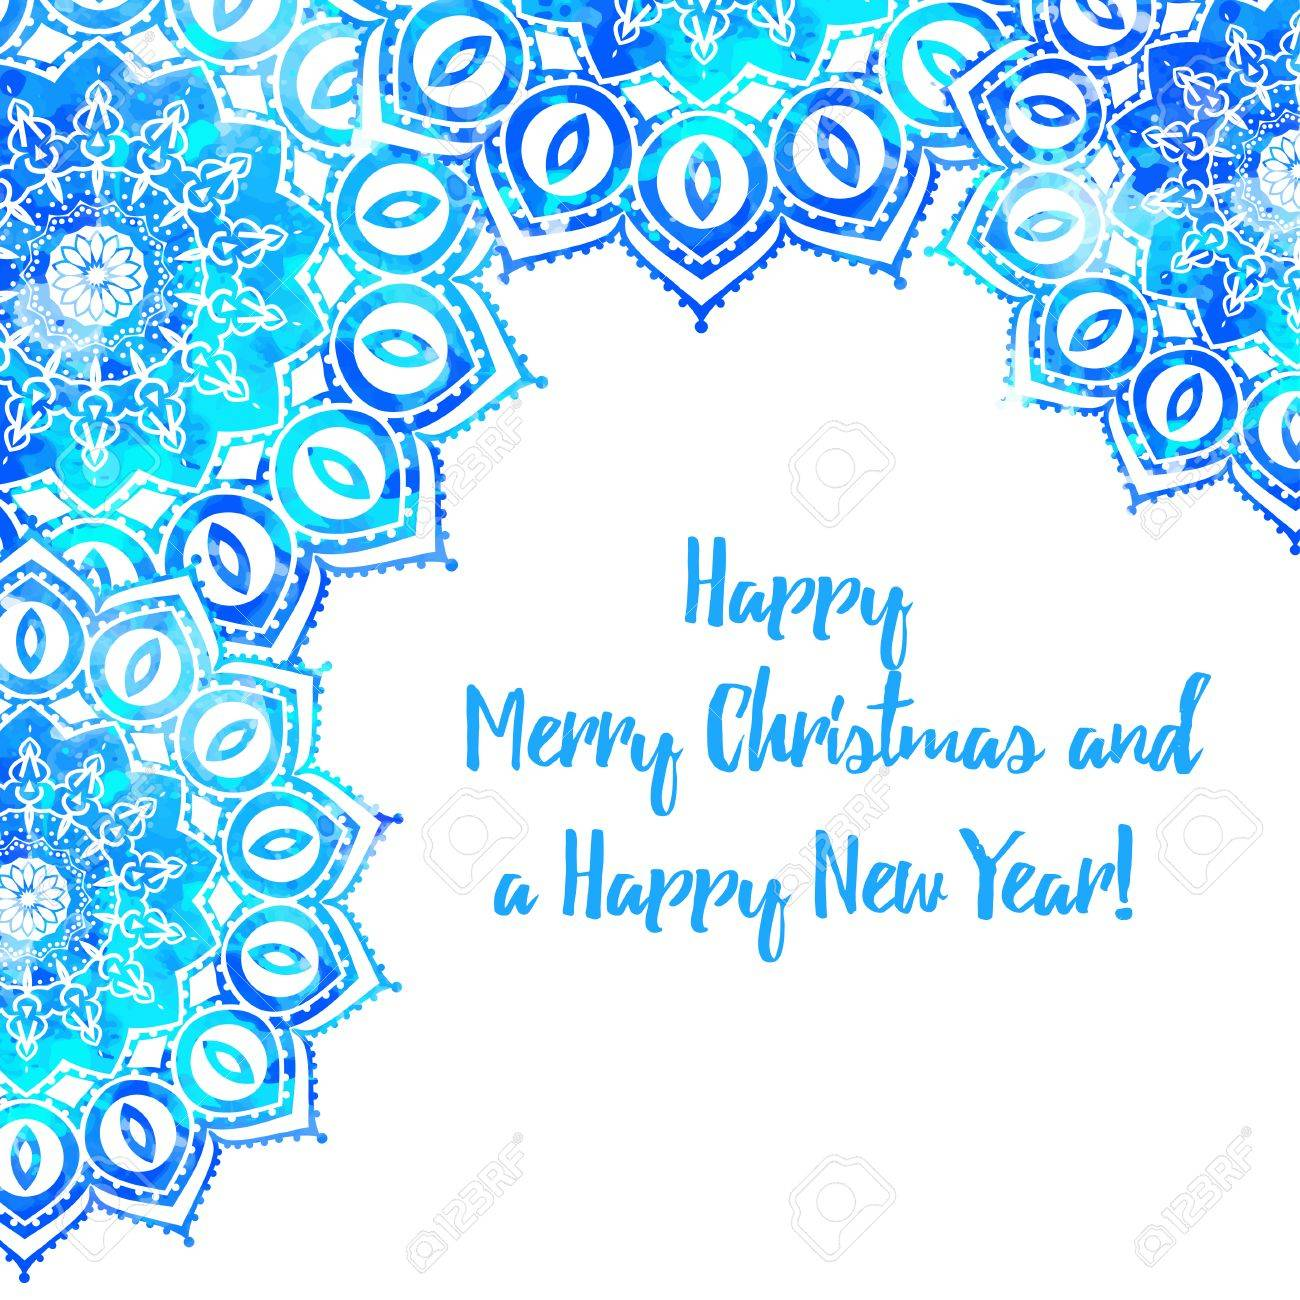 Greeting Card Happy New Year And Merry Christmas. Mandala Snowflake ...